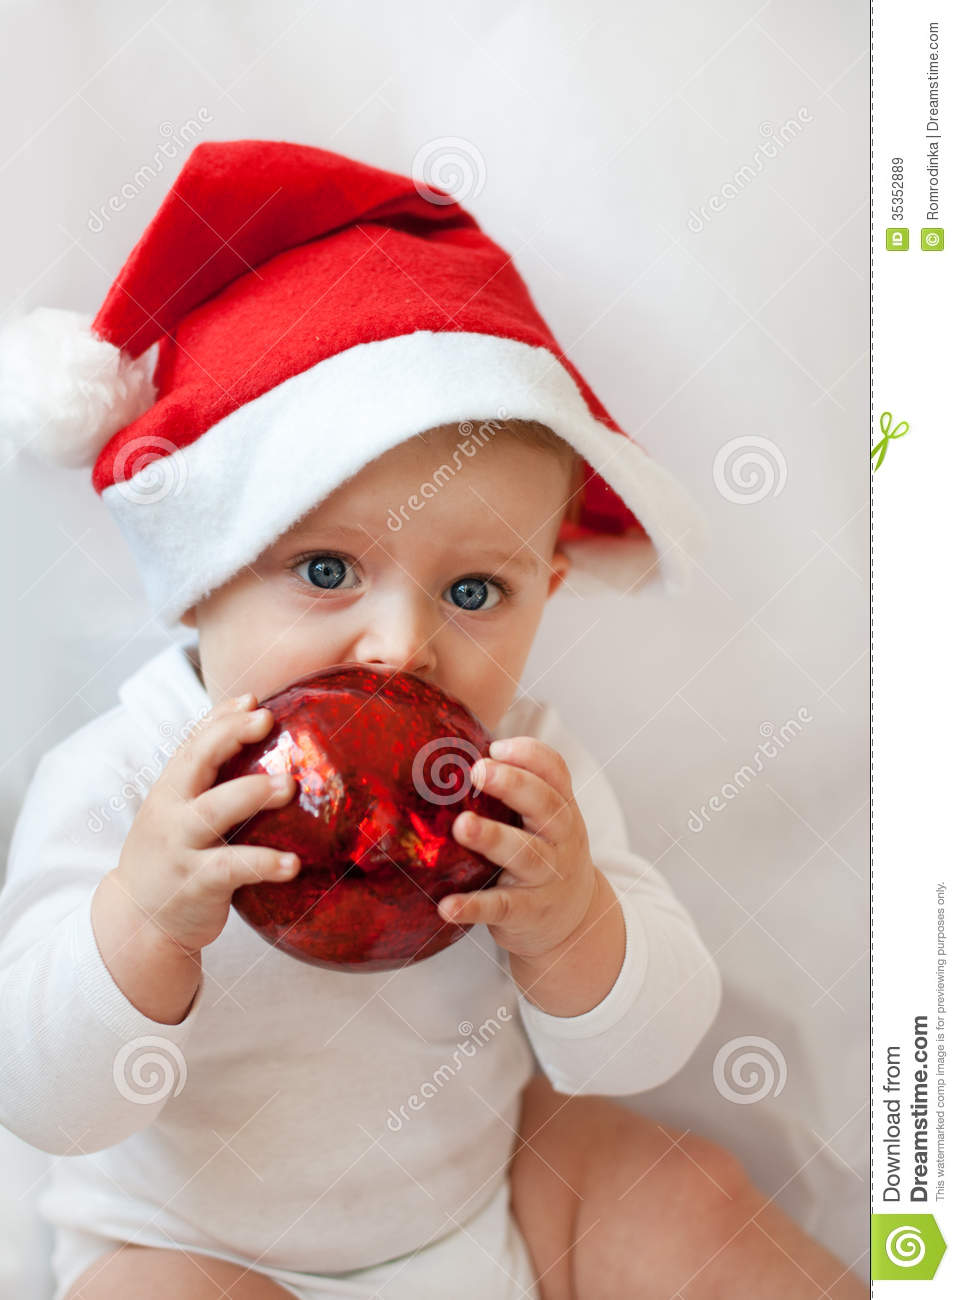 83a6f6b60ca Baby Boy With Christmas Cap And Balls Stock Image - Image of ball ...